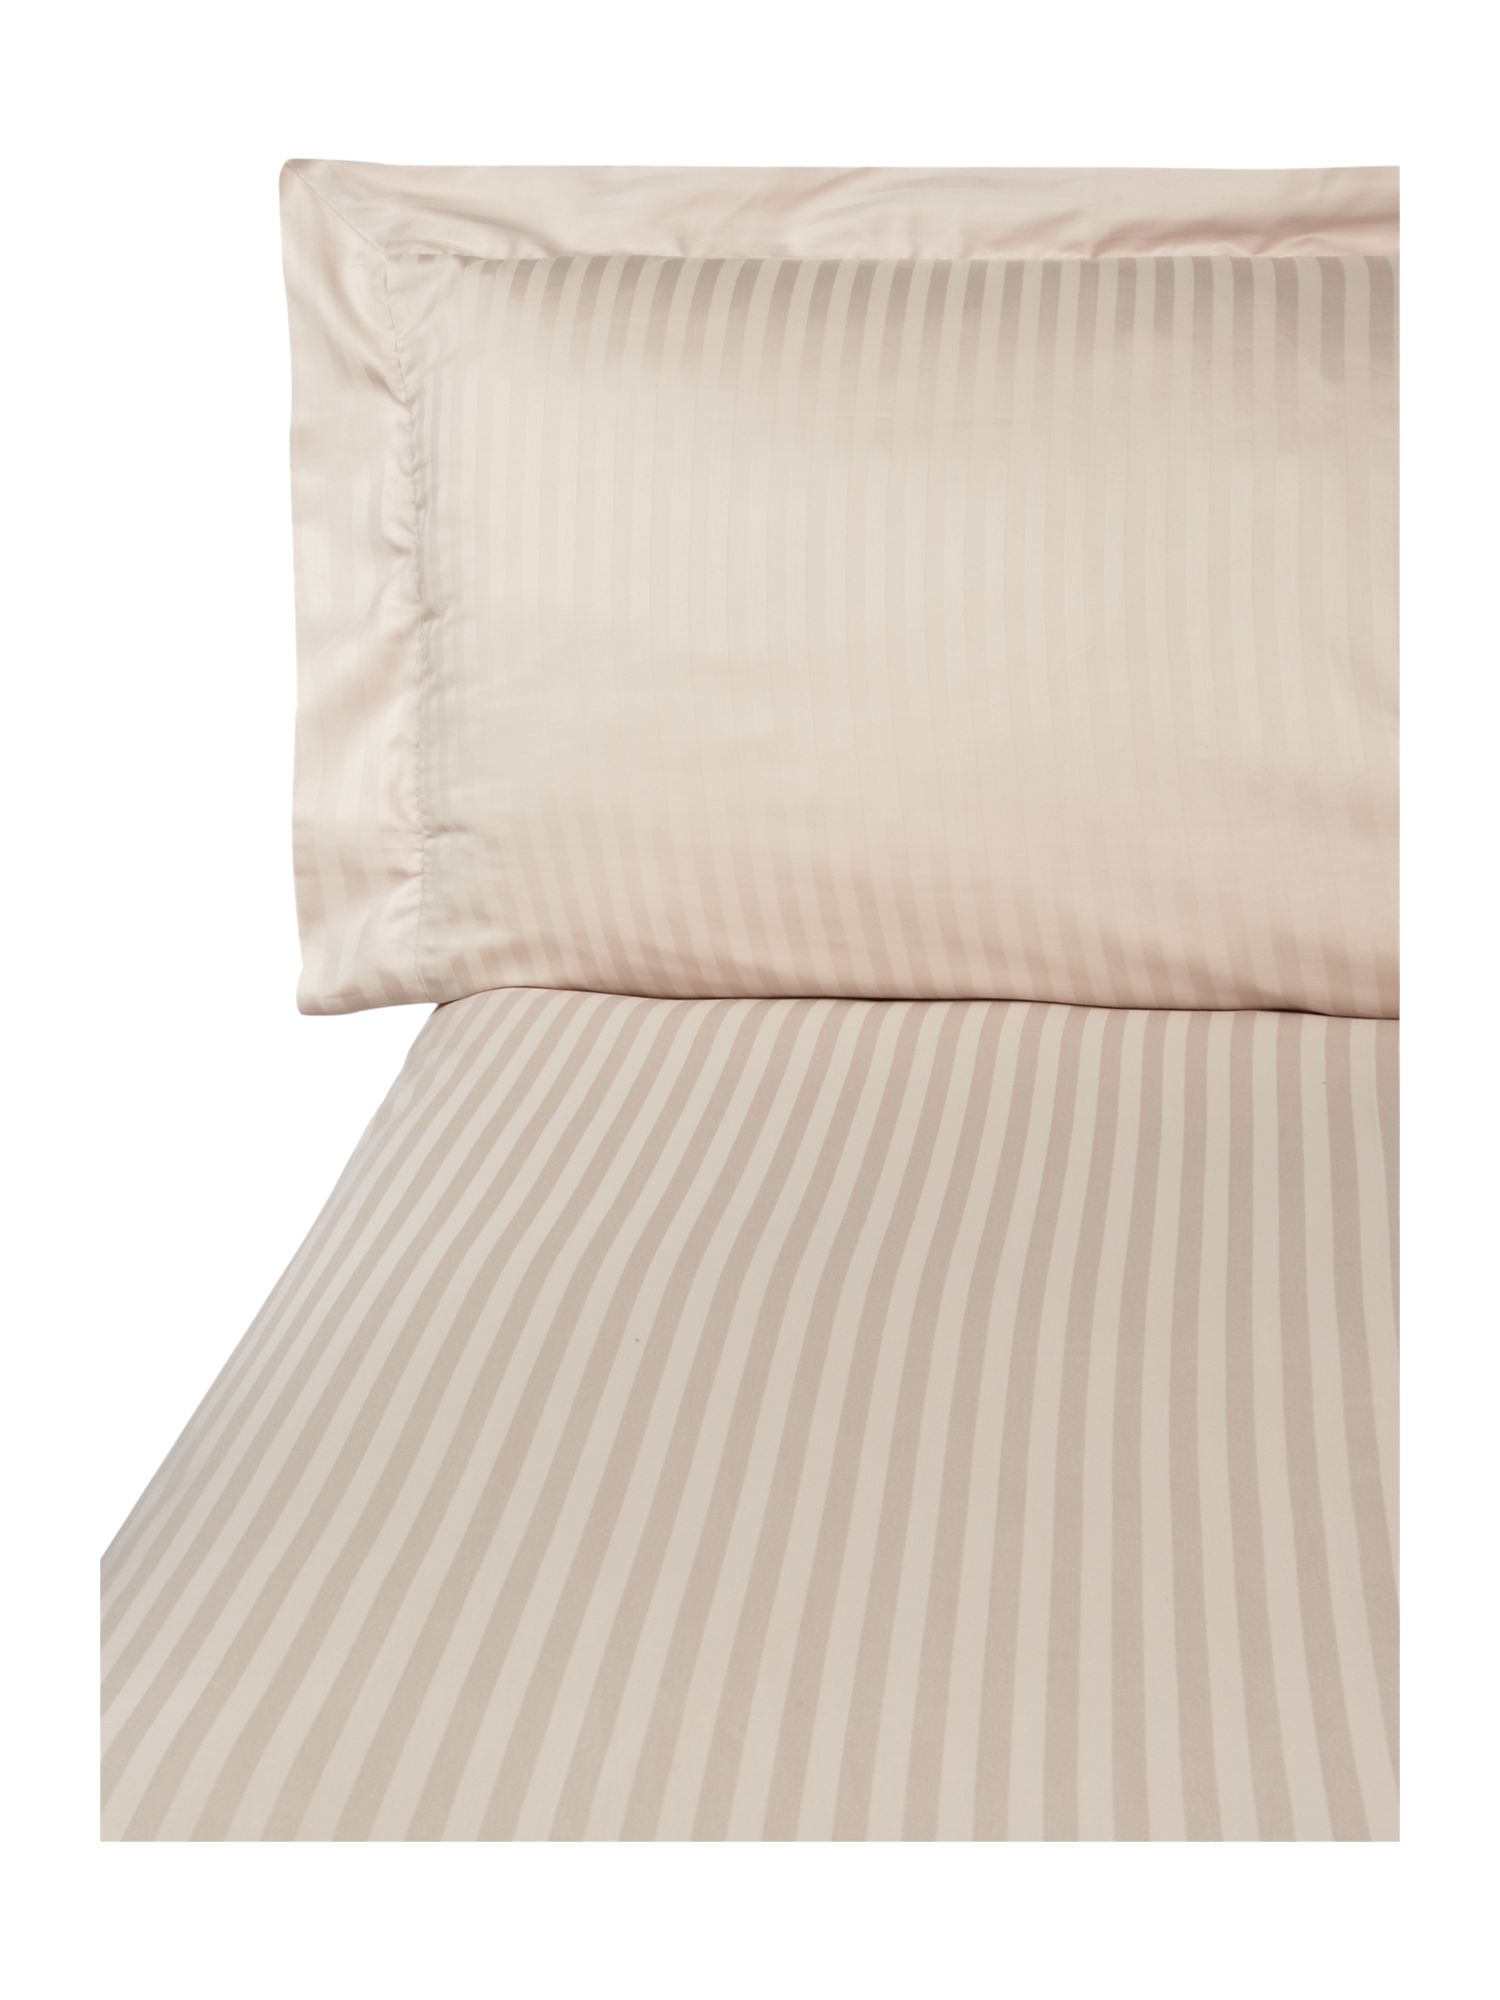 300TC Satin stripe bed linen in oyster